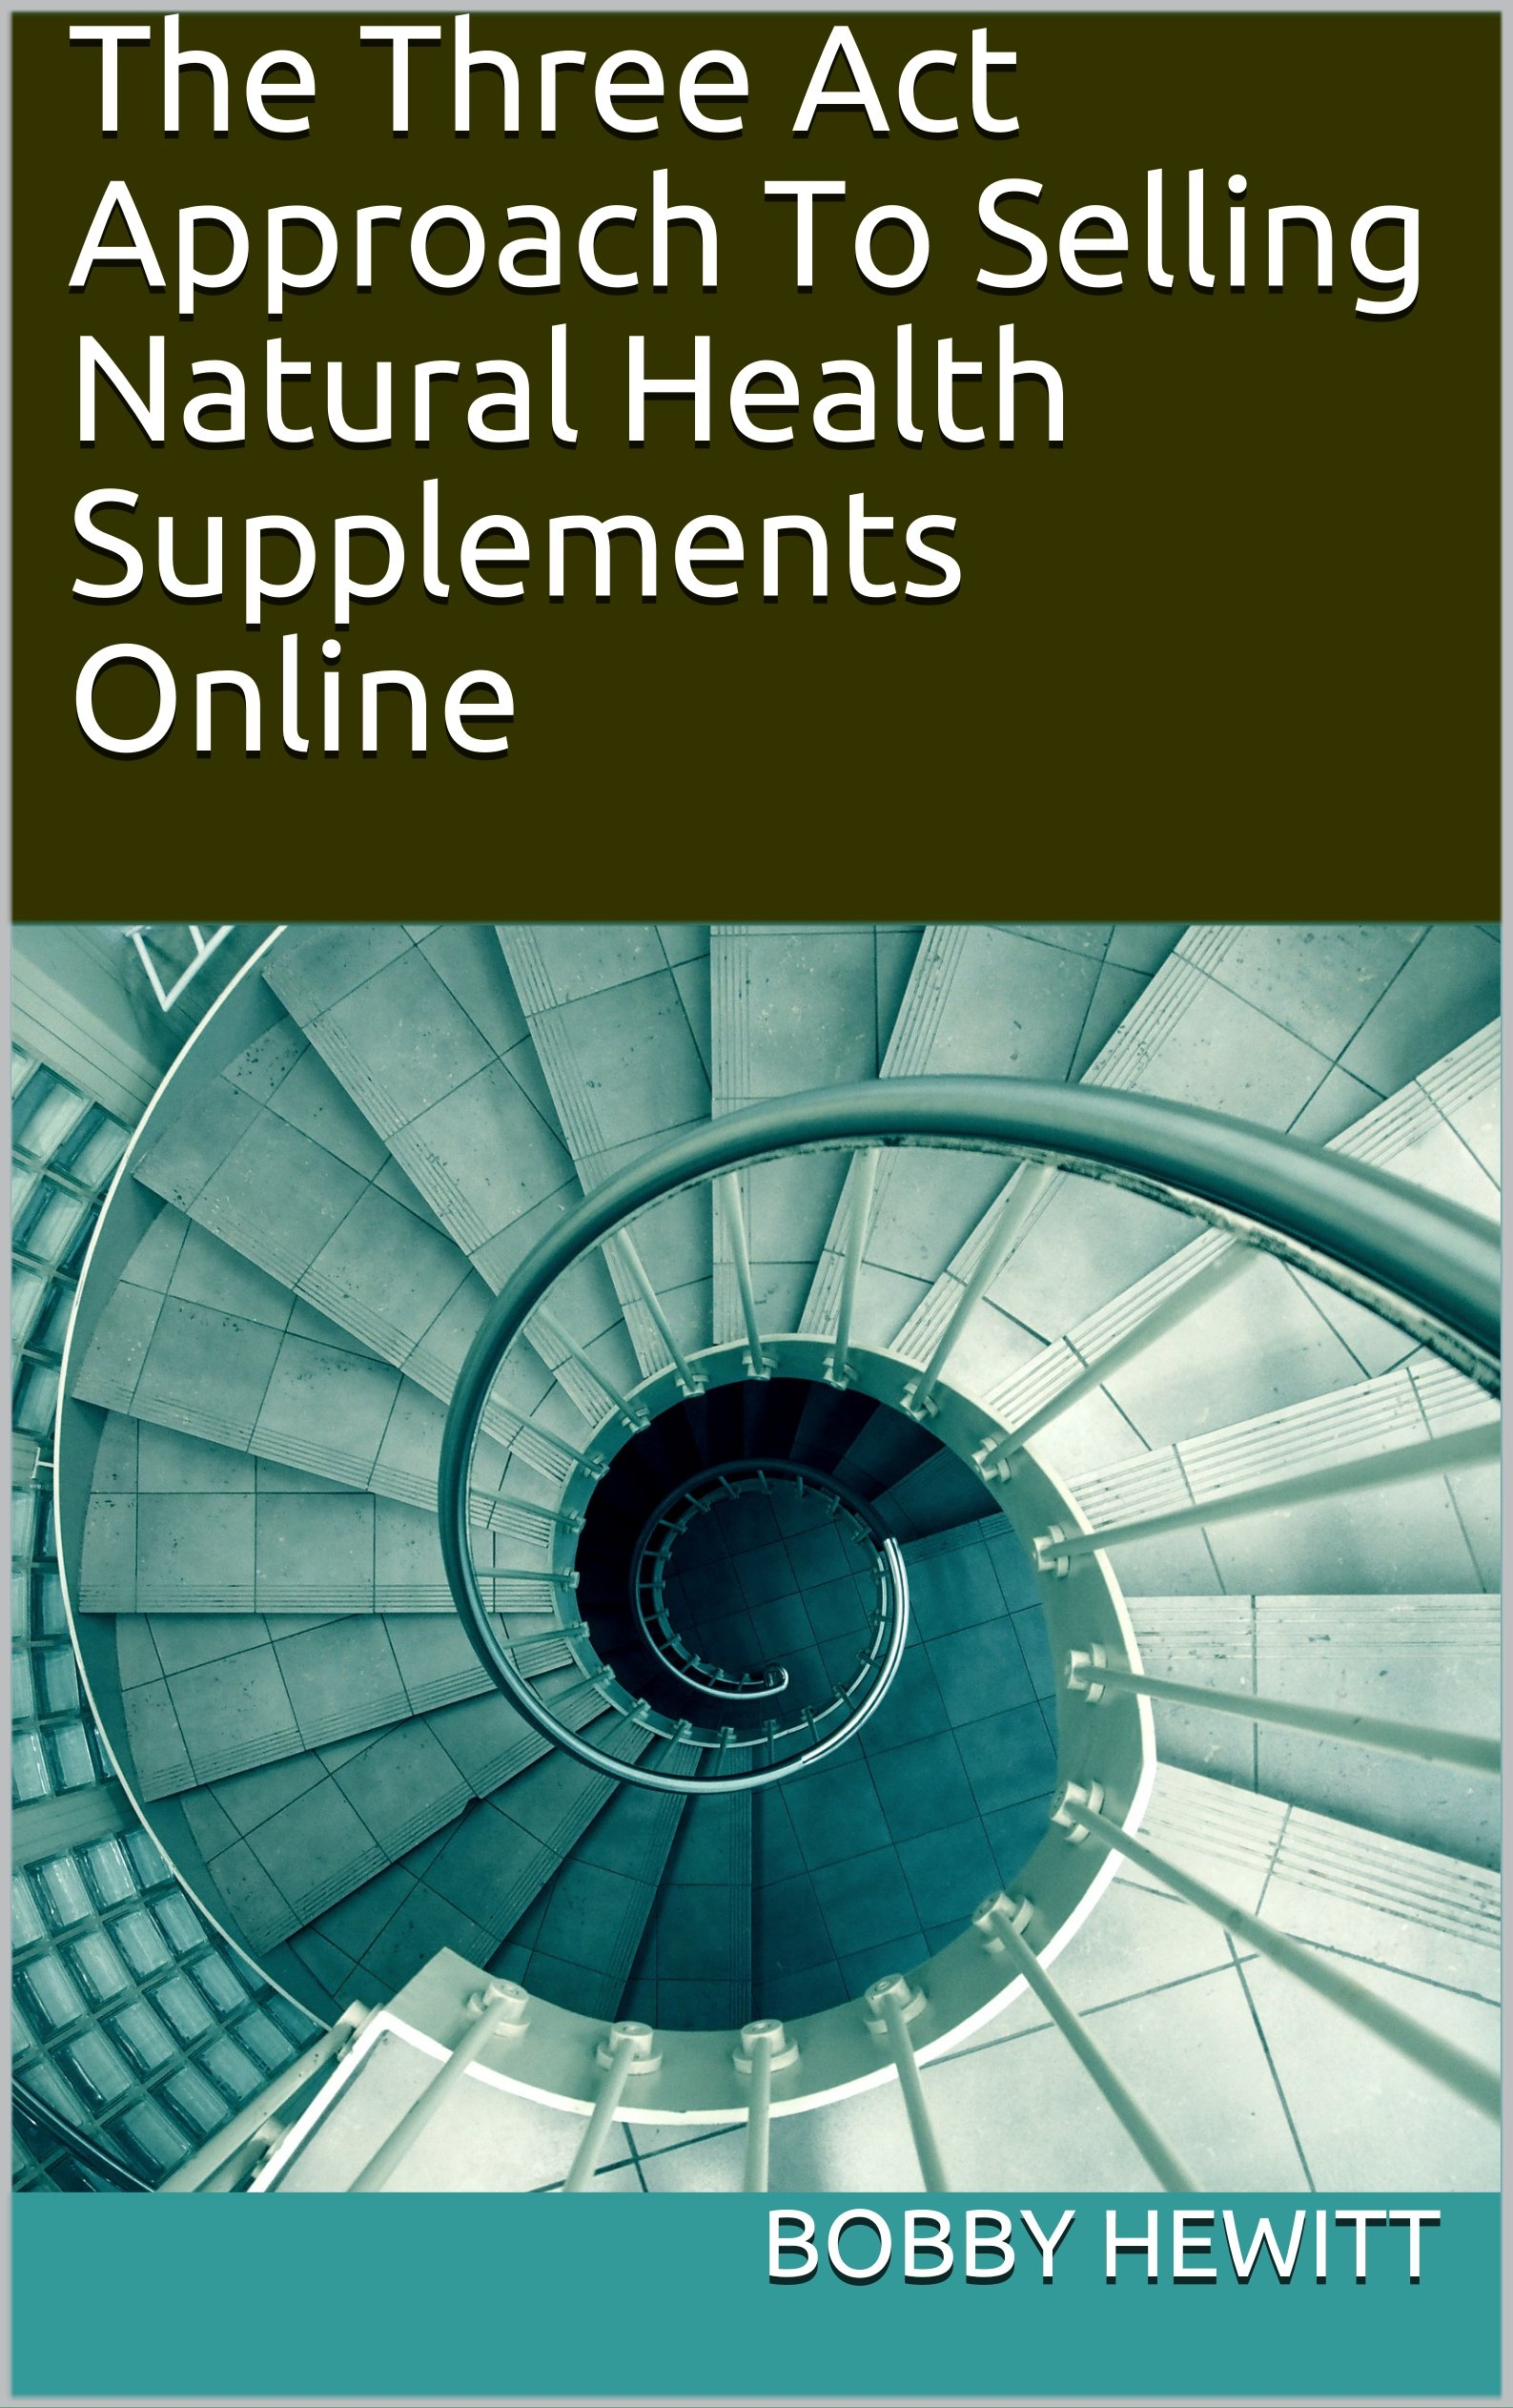 The Three Act Approach To Selling Natural Health Supplements Online